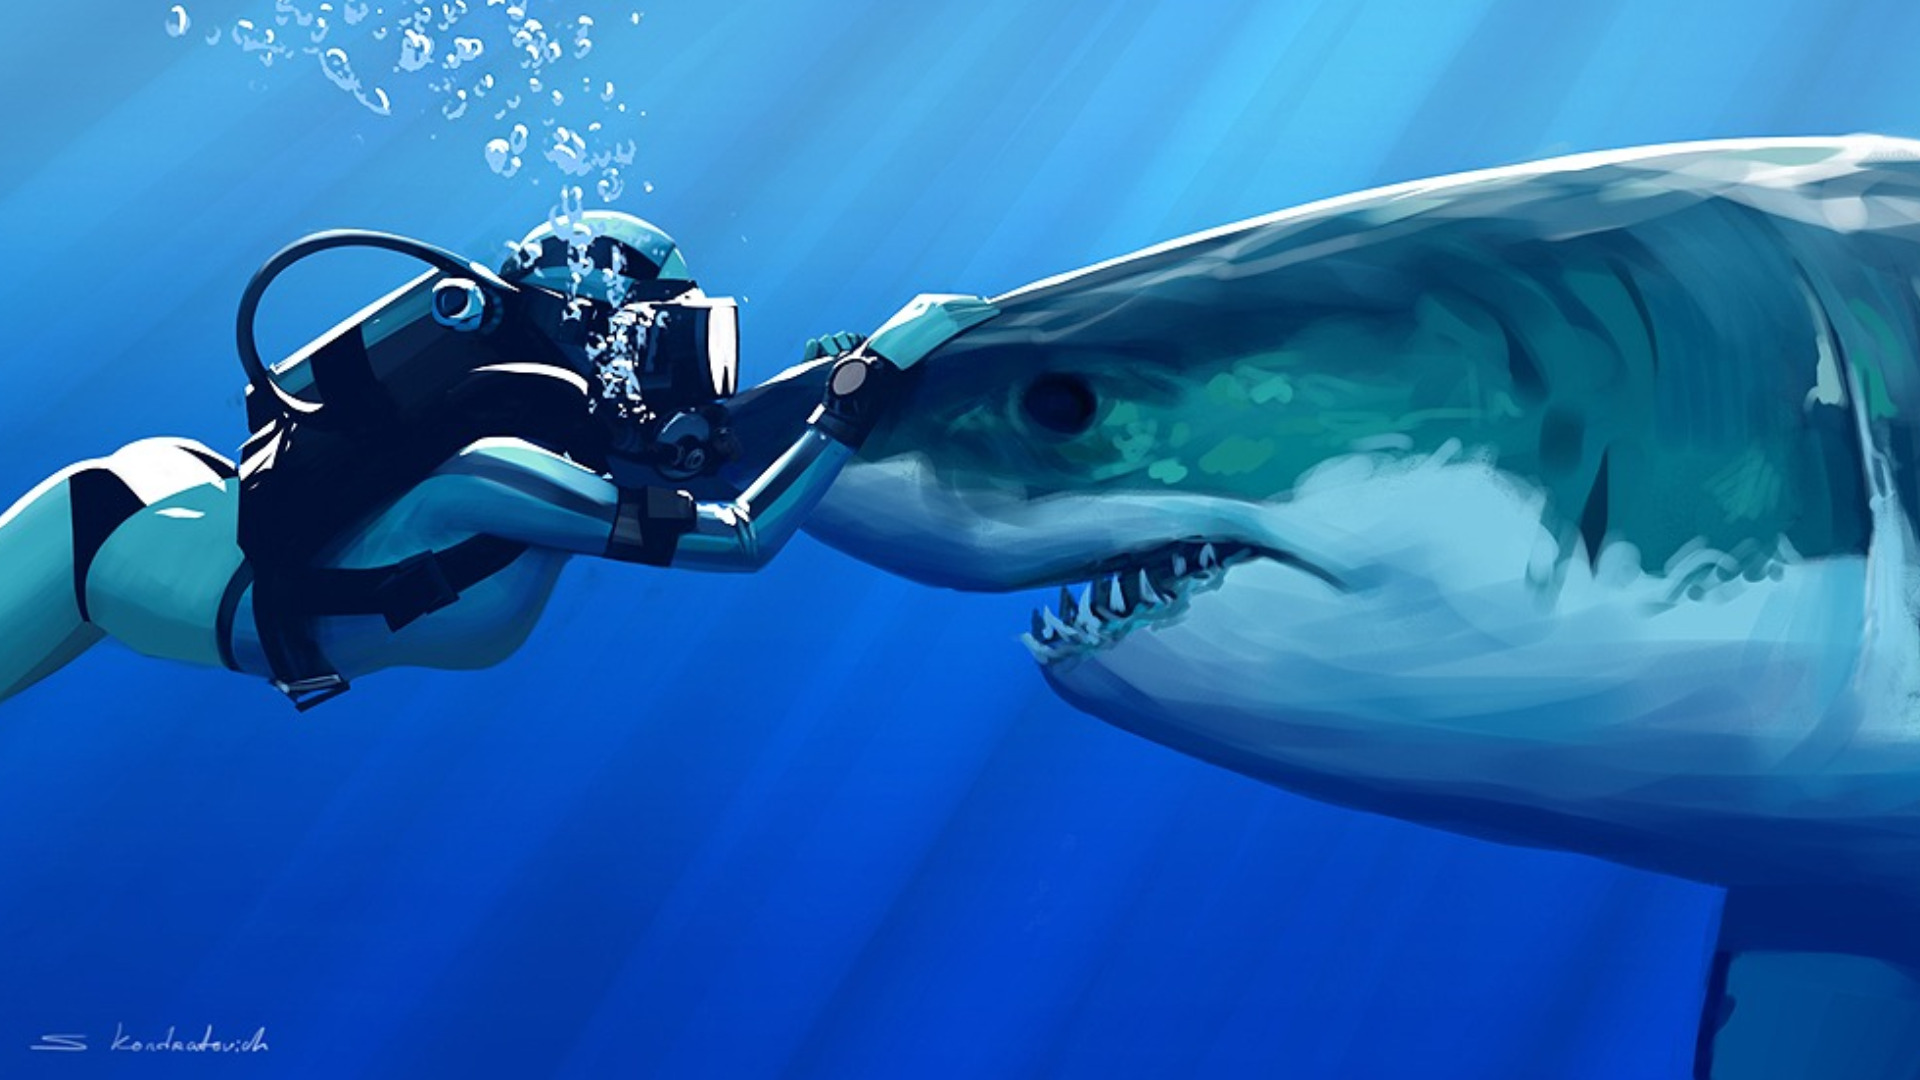 Scubadiving Wallpaper Posted By Samantha Anderson